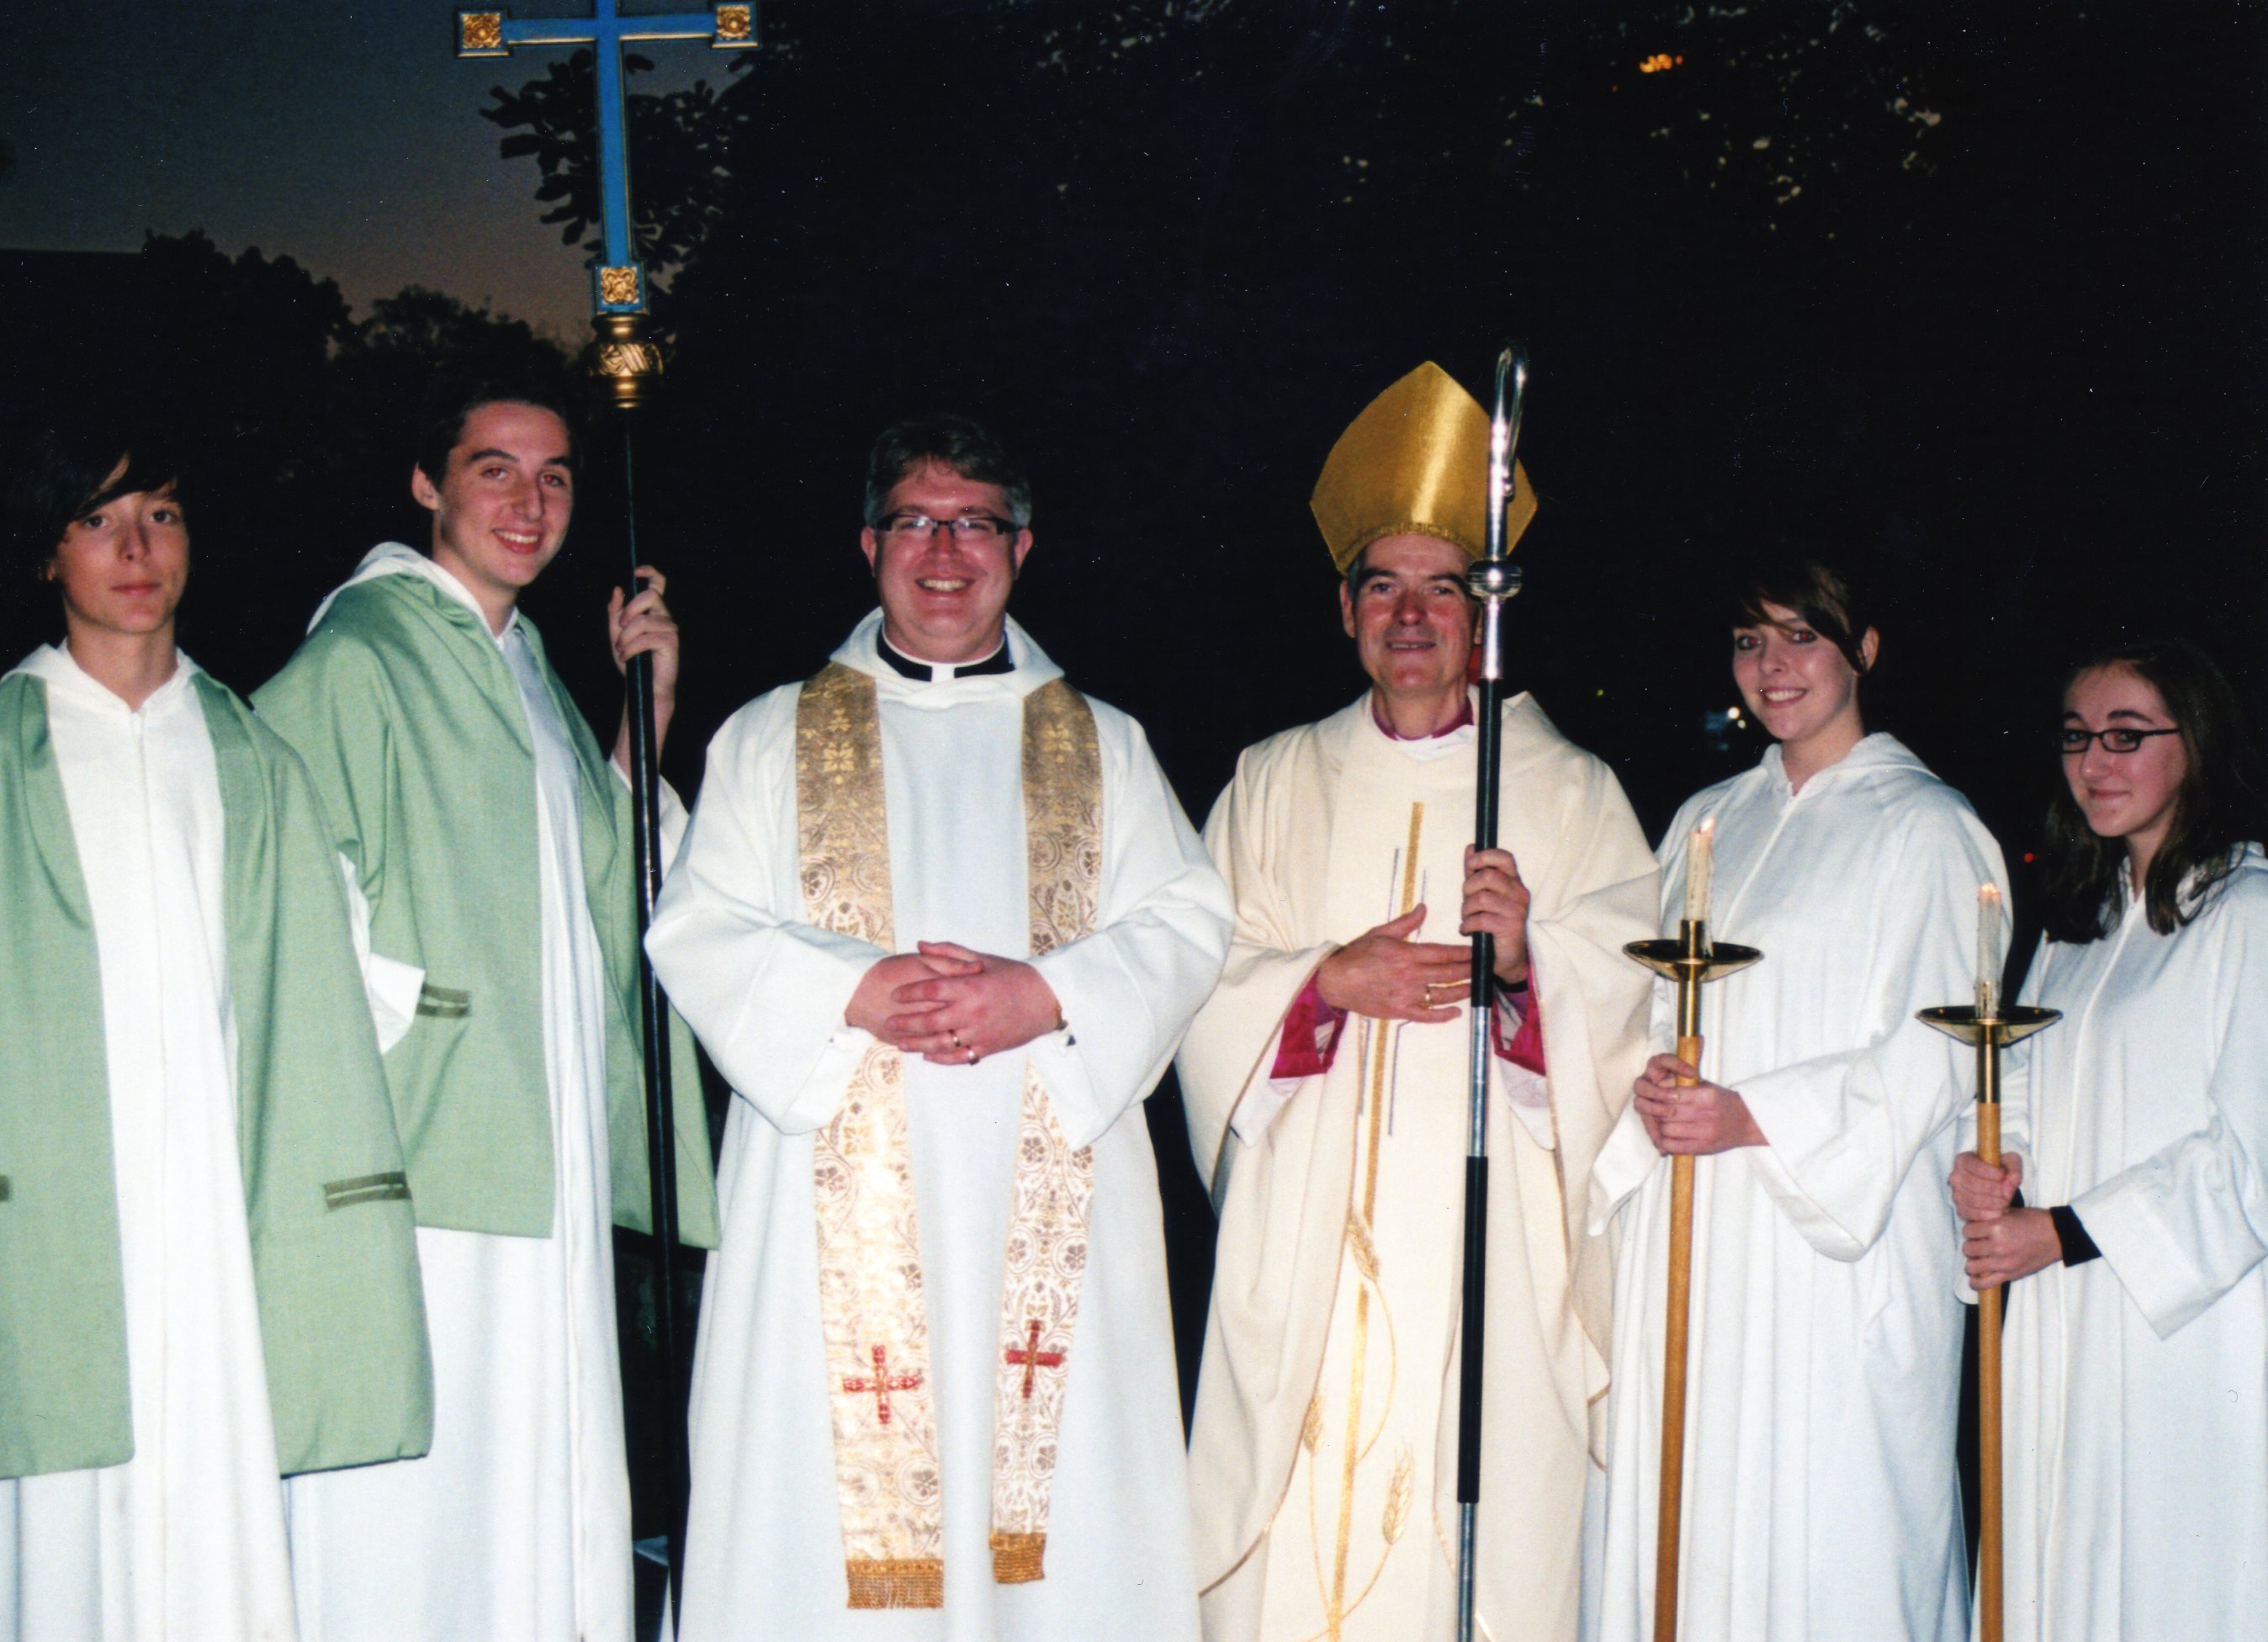 Two priests flanked by two pair of acolytes